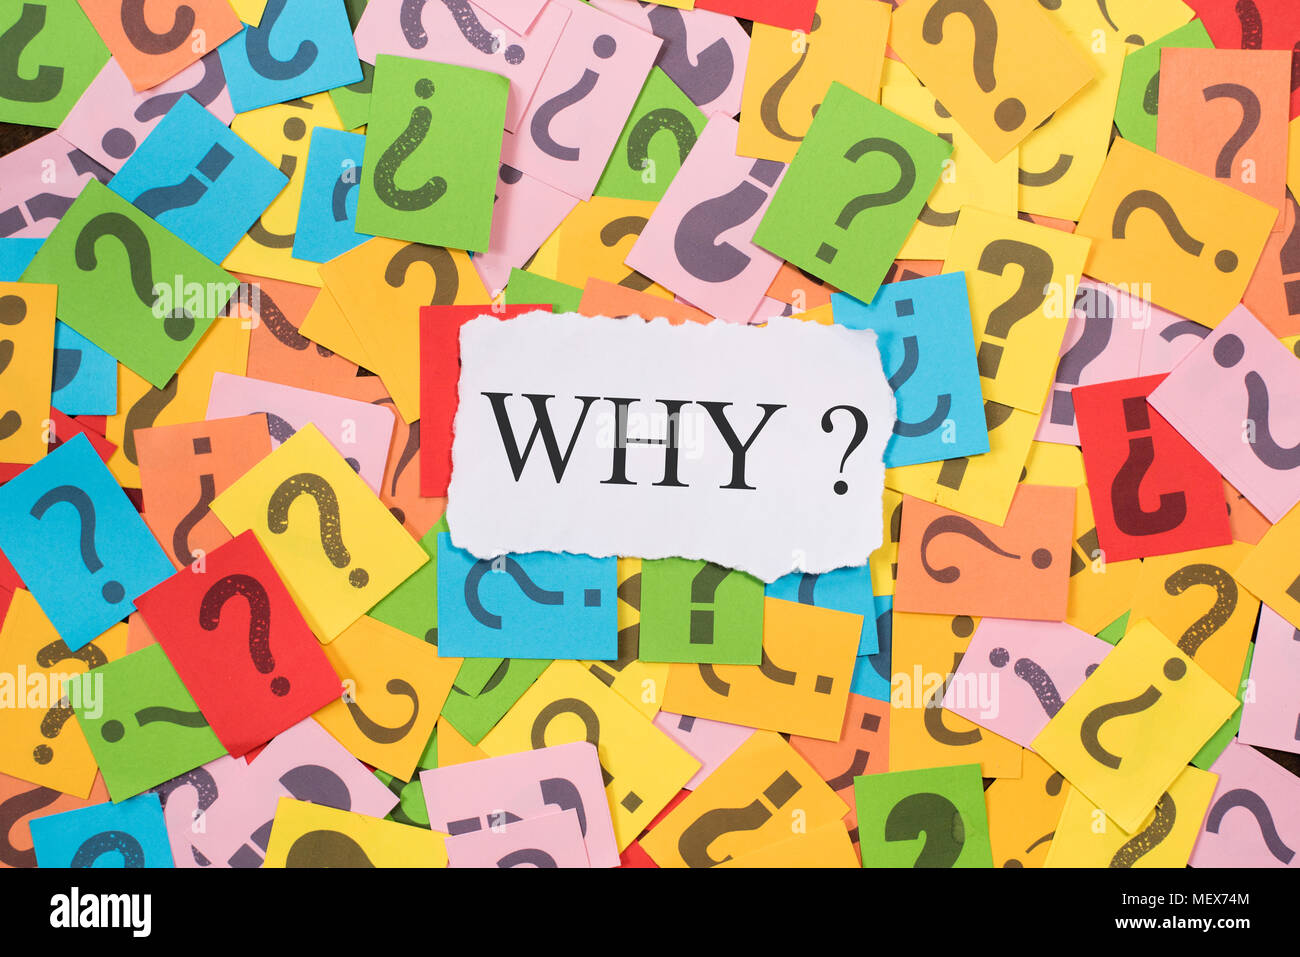 colourful paper note with question mark and white paper with word WHY. why concept background - Stock Image